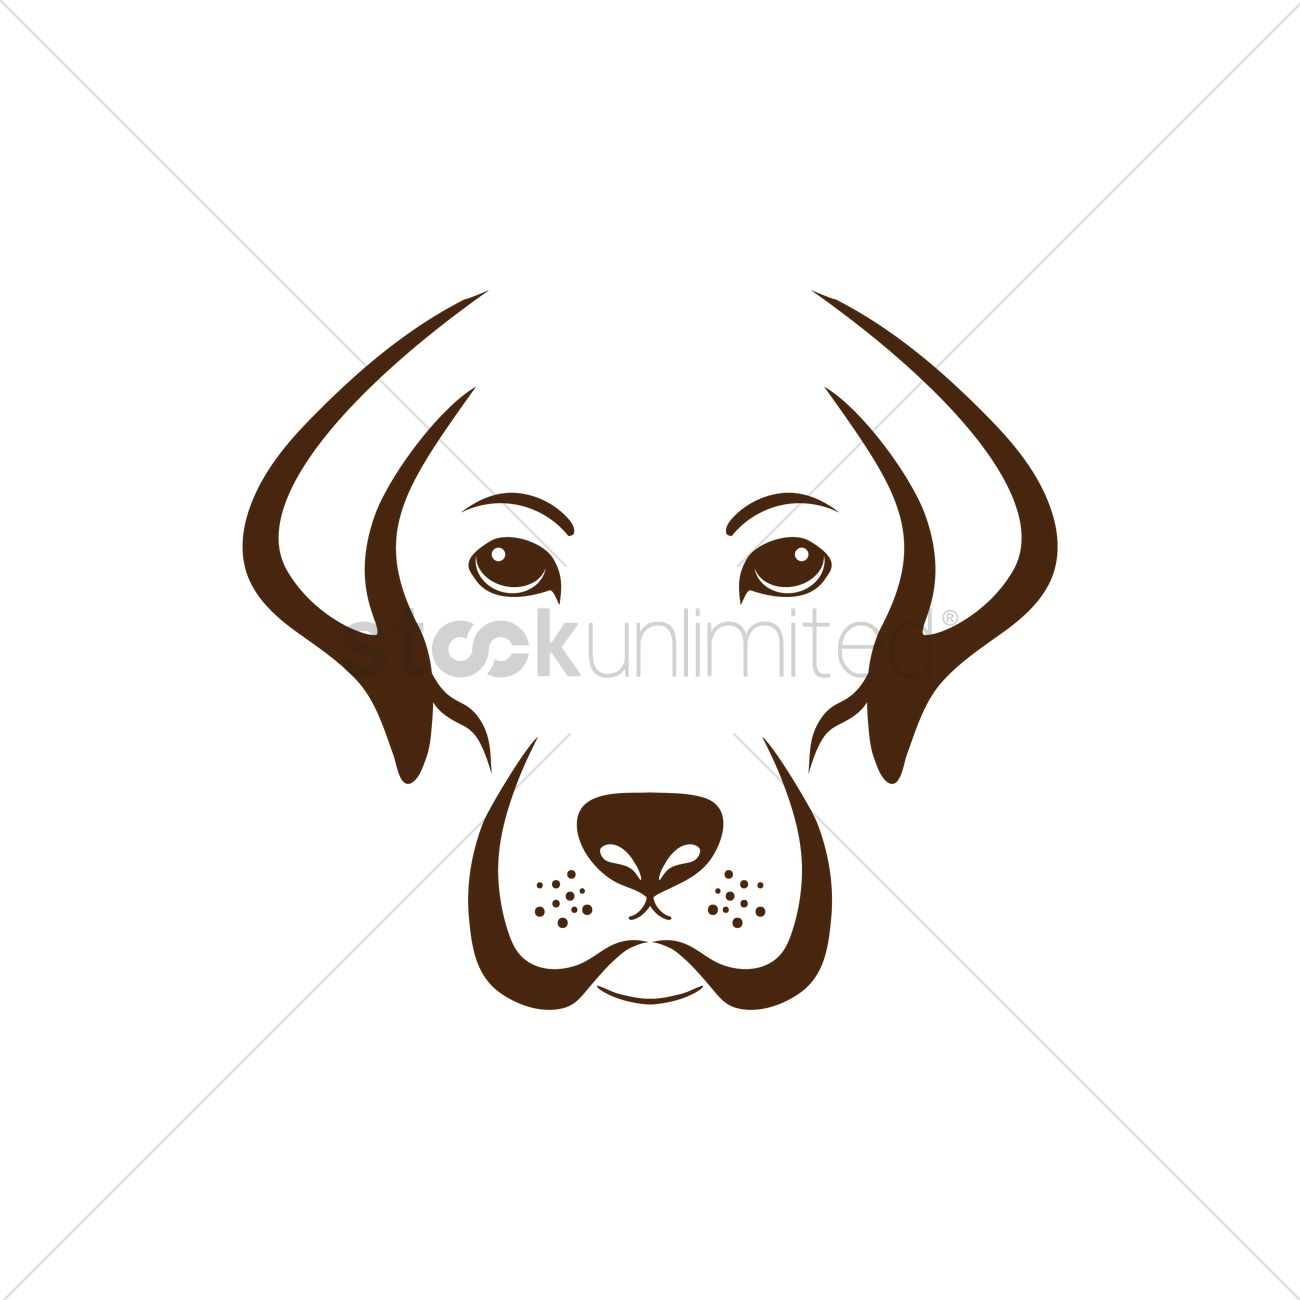 Simple dog design Vector Image - 1515557 | StockUnlimited